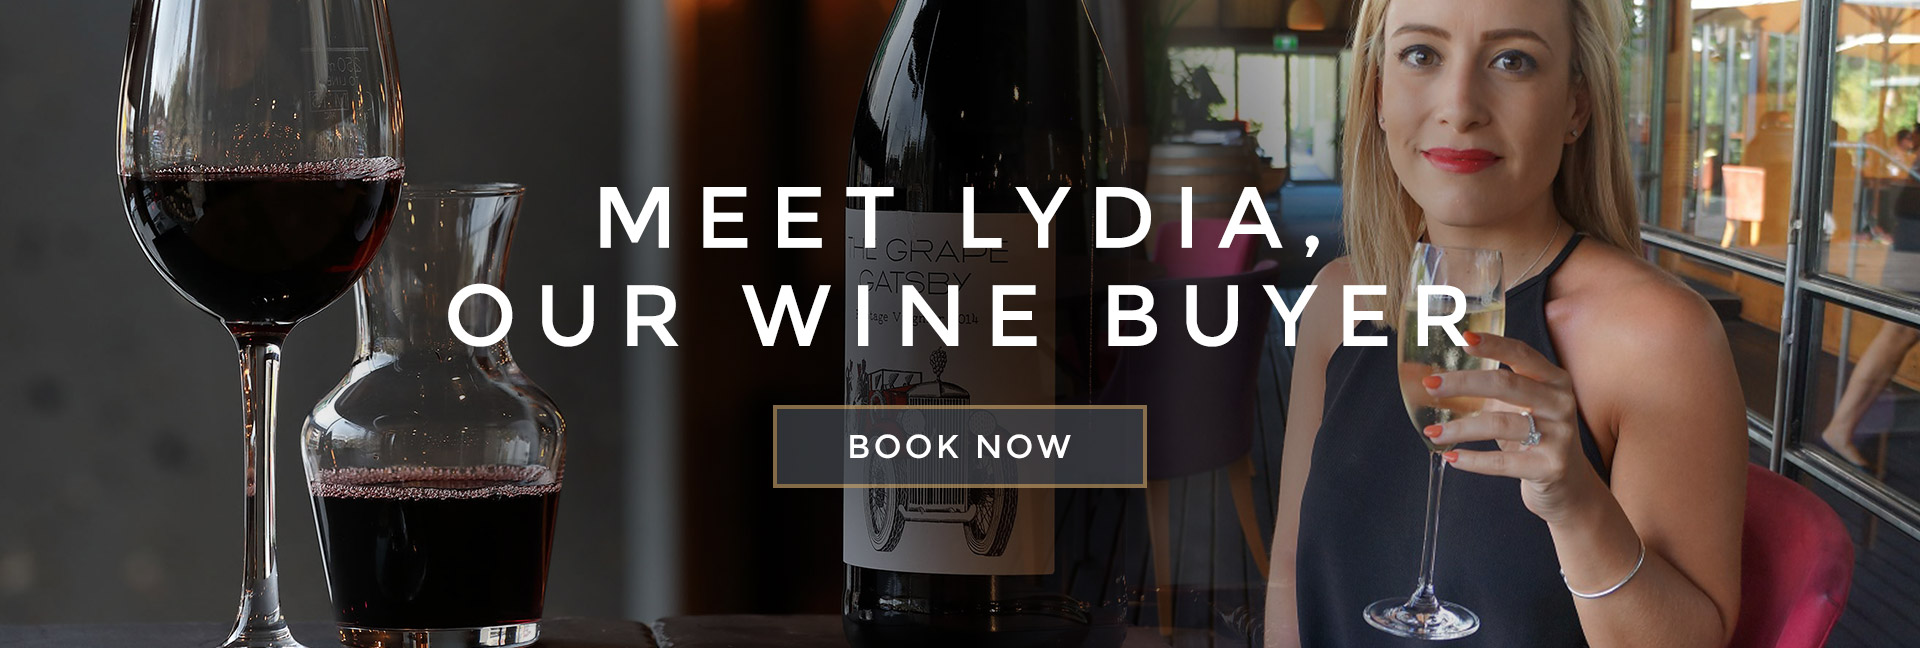 Meet Lydia, our wine buyer at All Bar One Ludgate Hill